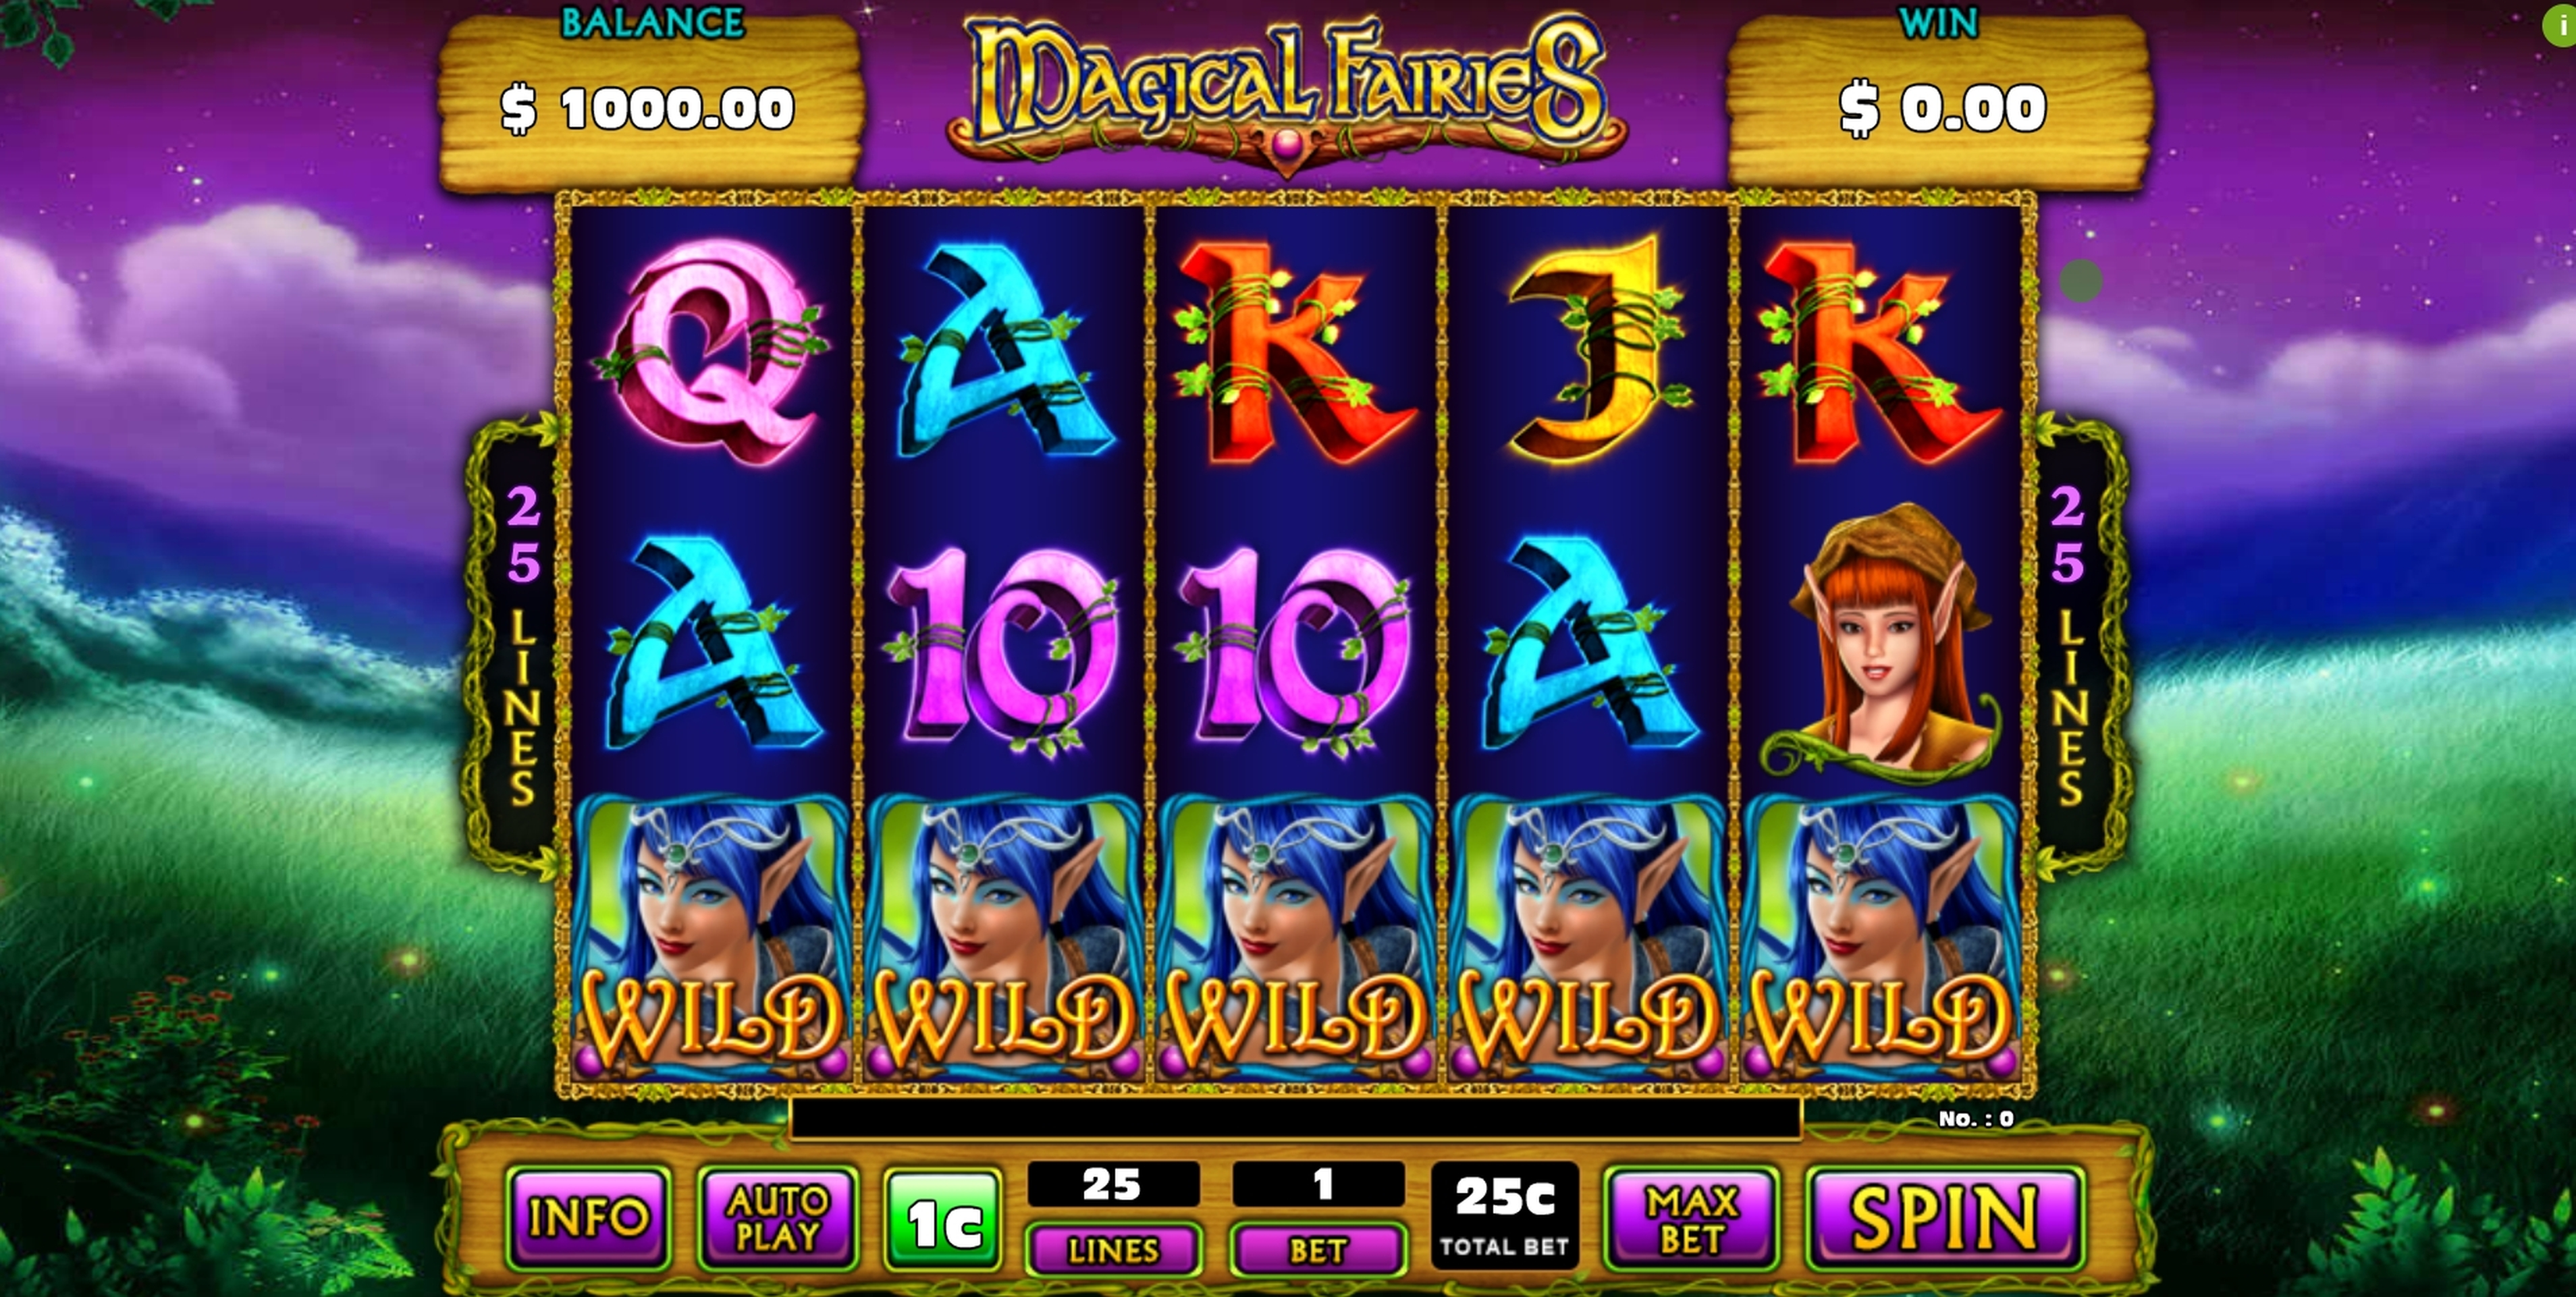 Reels in Magical Fairies Slot Game by GMW